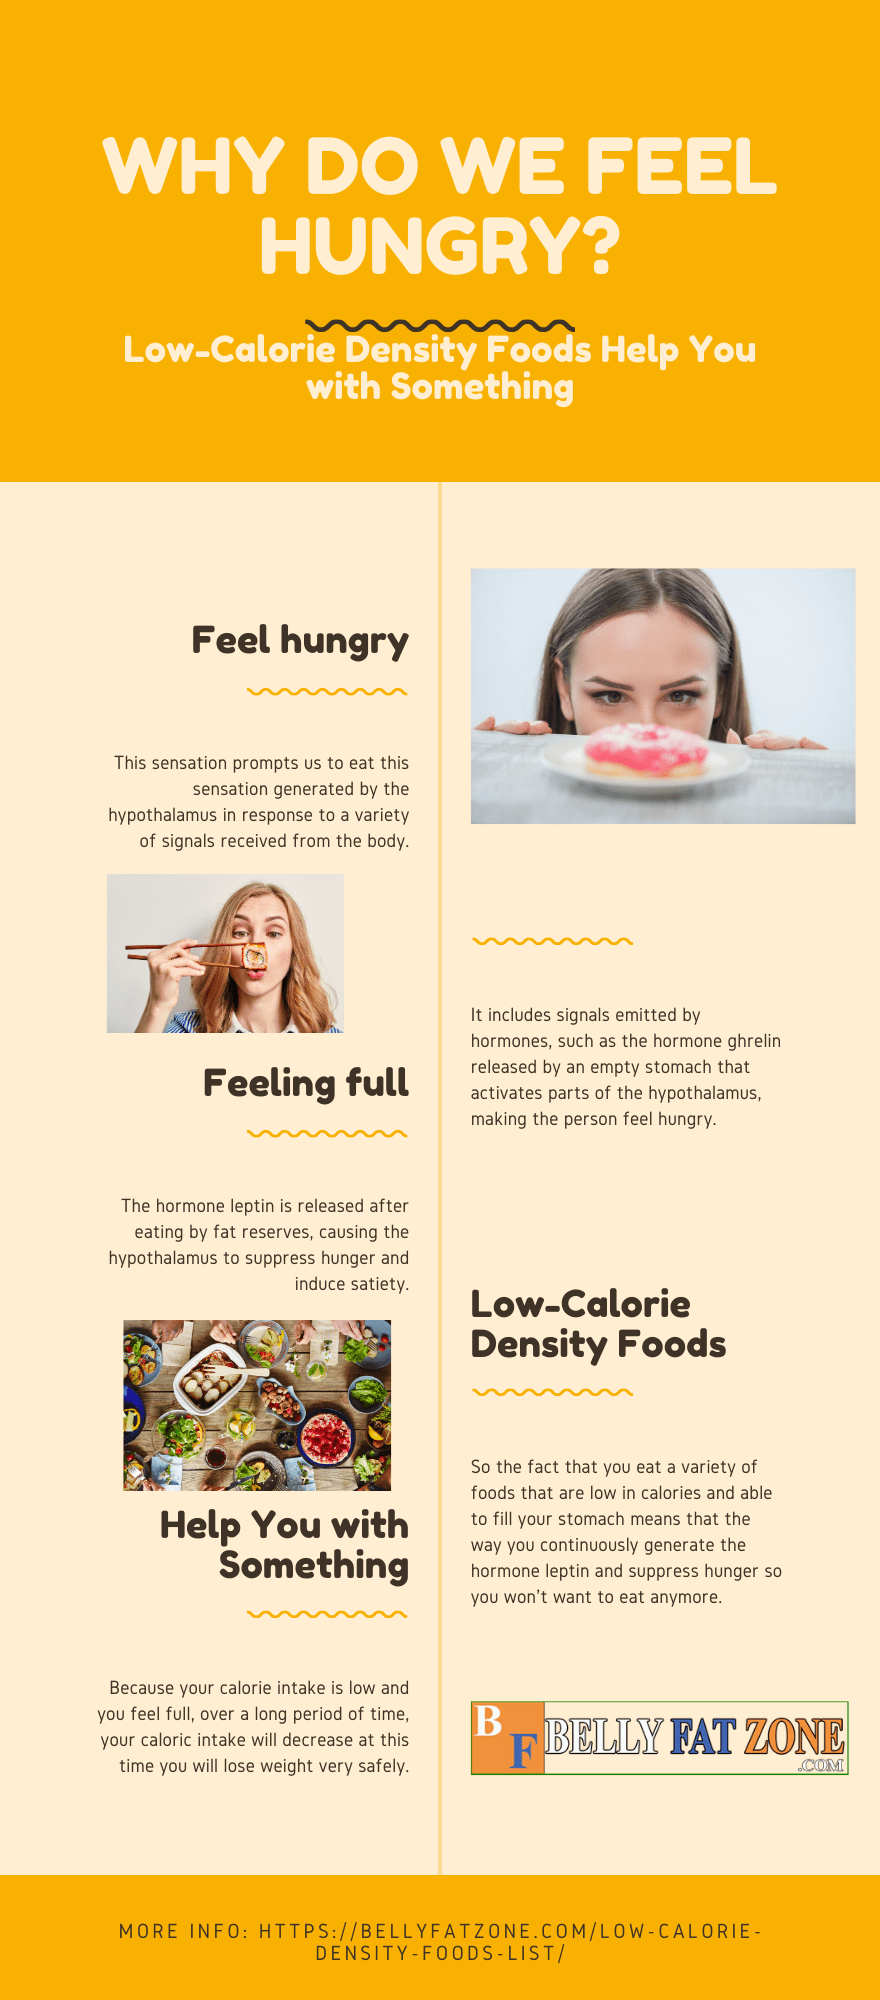 Why do we feel hungry - Low-Calorie Density Foods Help You with Something?